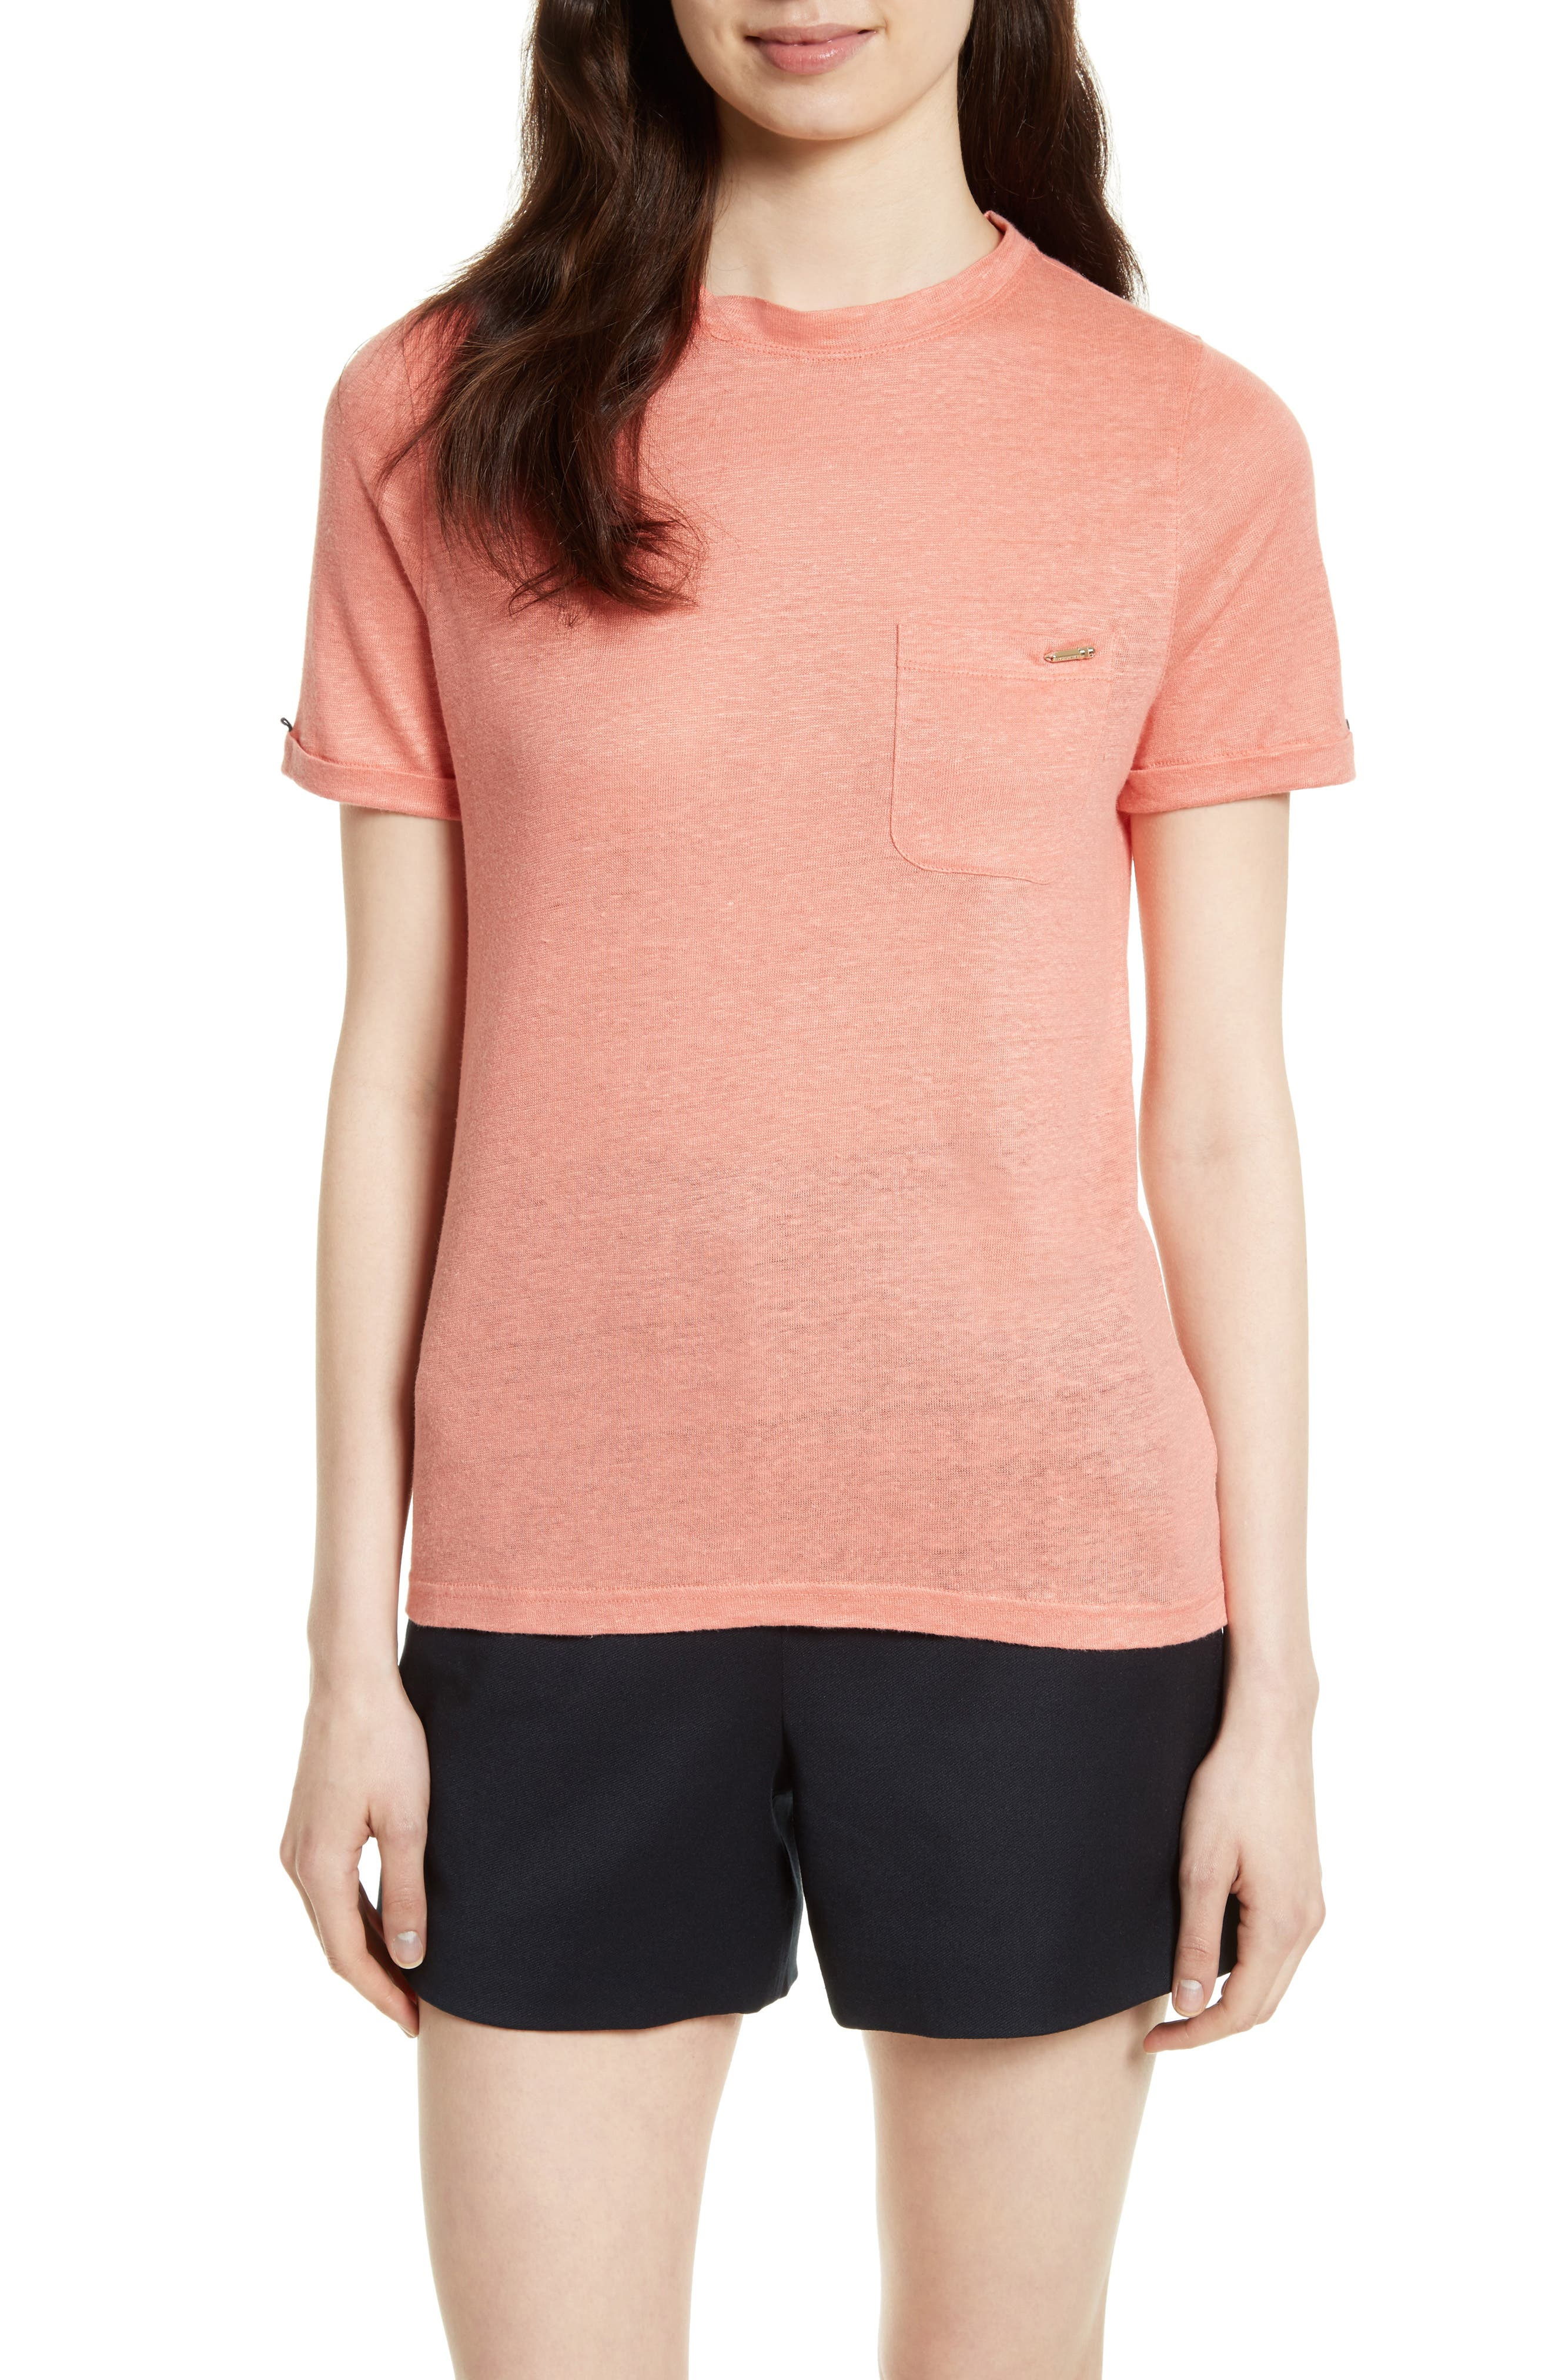 Alternate Image 1 Selected - Ted Baker London Harlaa Square Cut Linen Tee